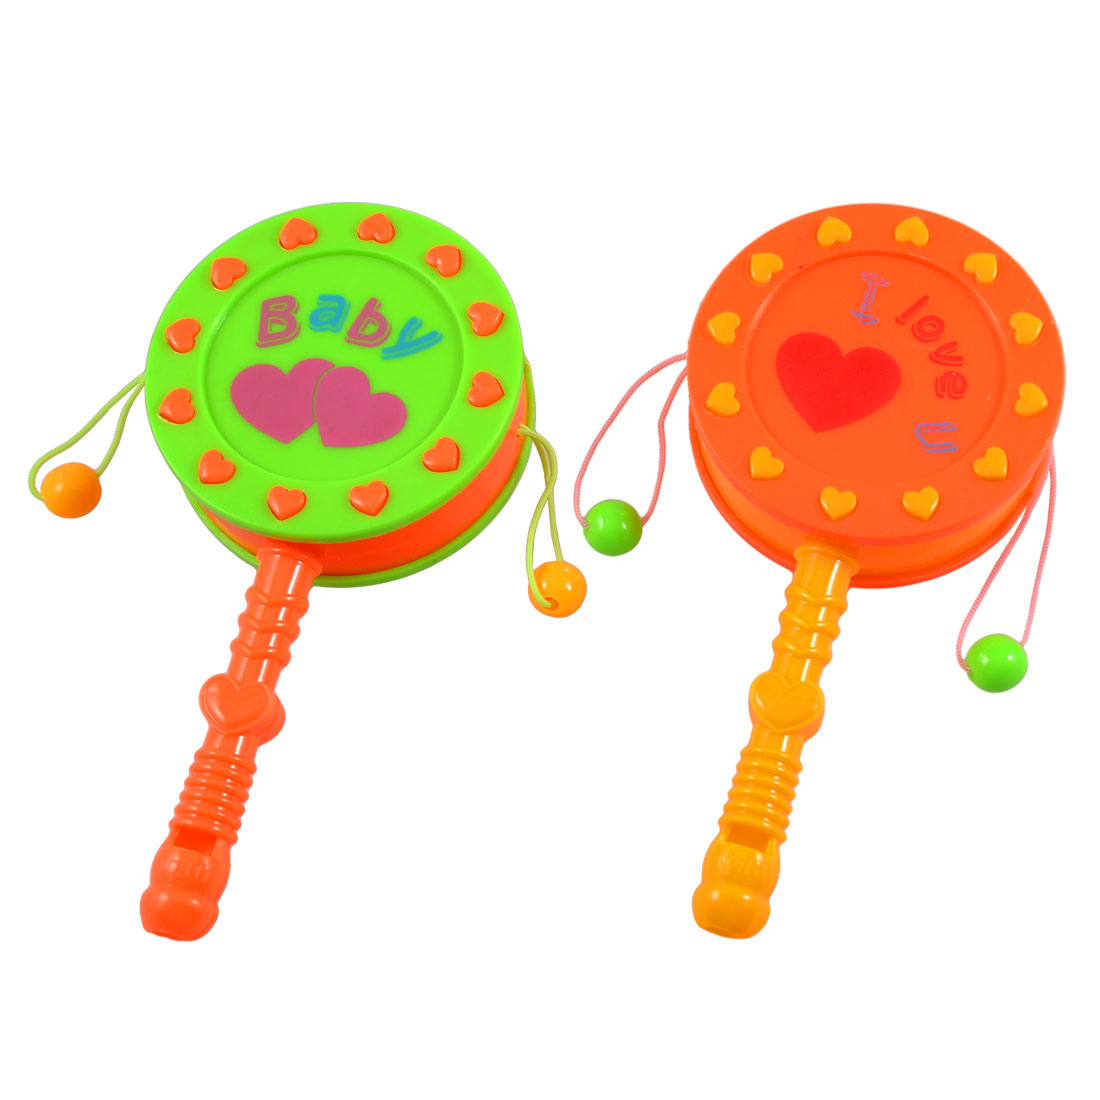 Babies Green Orange Plastic Nonslip Handle Rattle Drum Playing Toy 2 Pcs